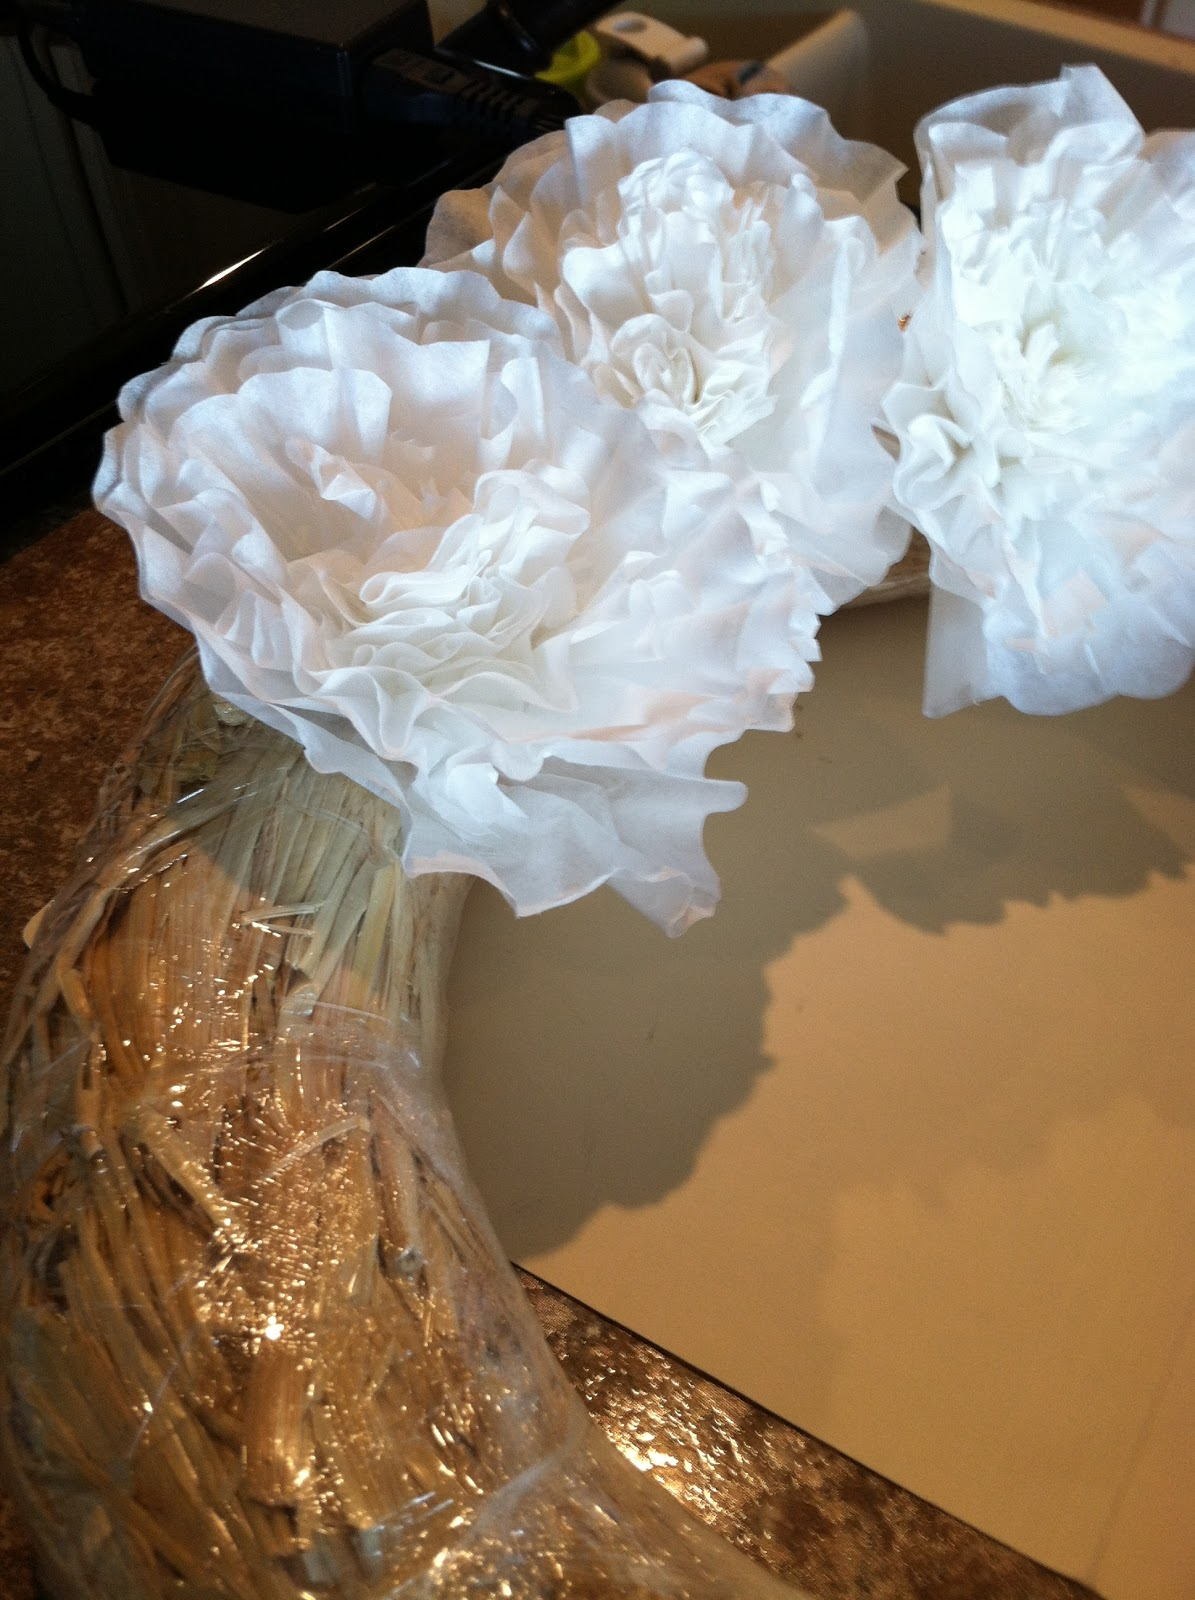 Natural Homemade Living Shabby Chic Coffee Filter Wreath